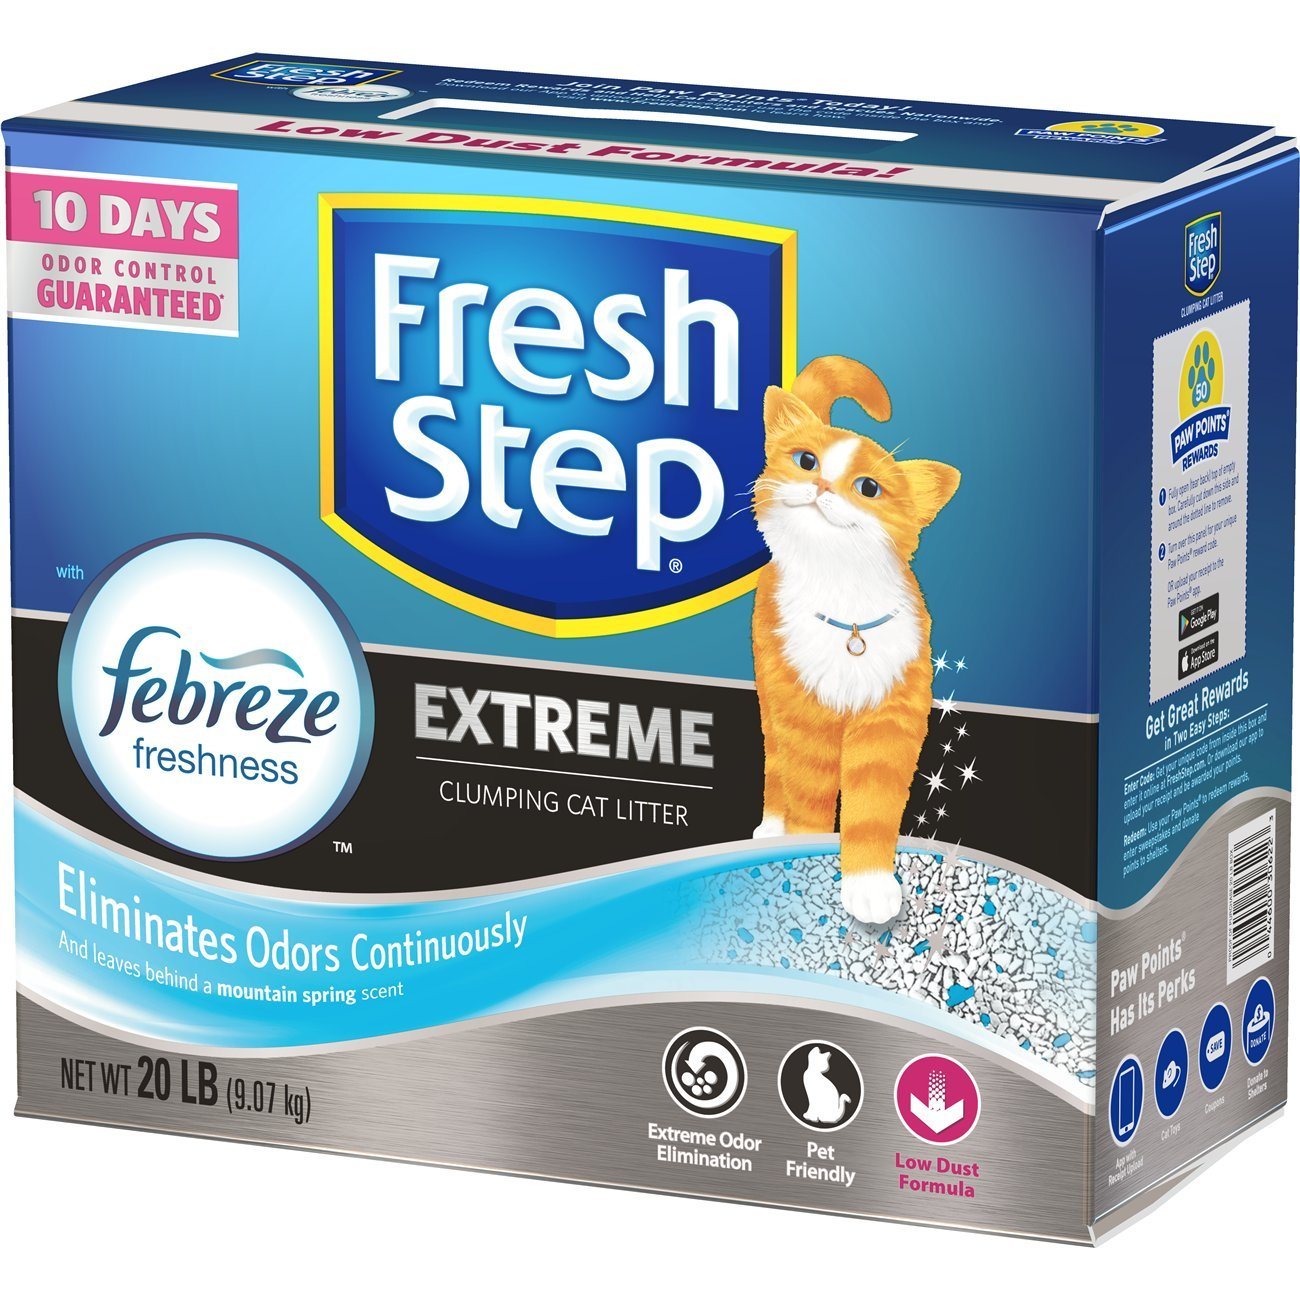 Fresh Step Extreme with Febreze Freshness Clumping Cat Litter